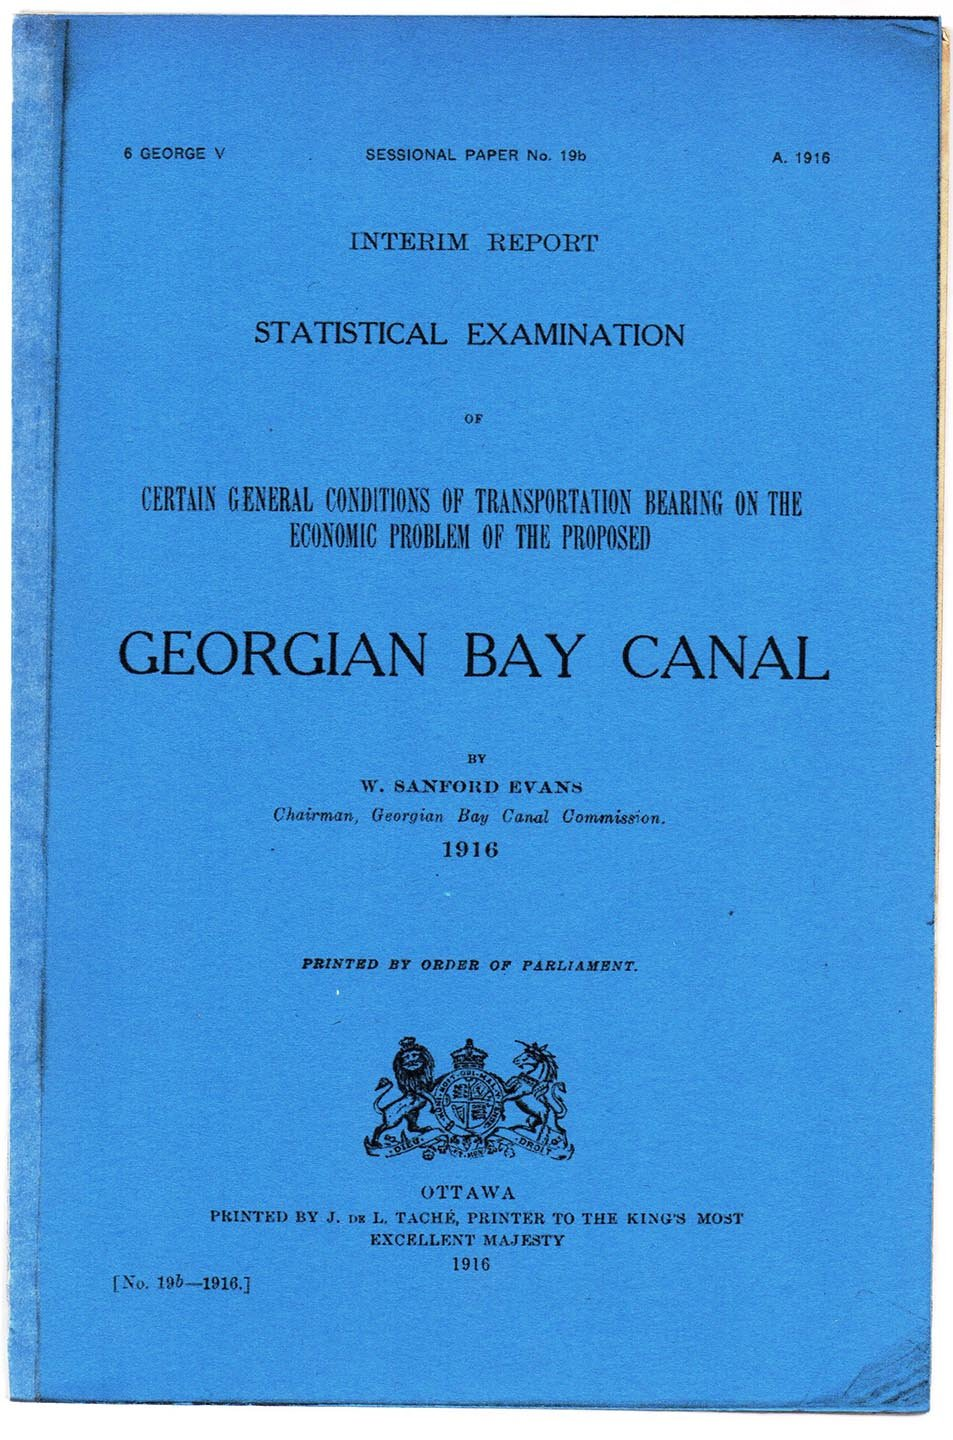 Interim Report. Statistical Examination of Certain General Conditions of Transportation Bearing on Economic Problem of the Proposed Georgian Bay Canal